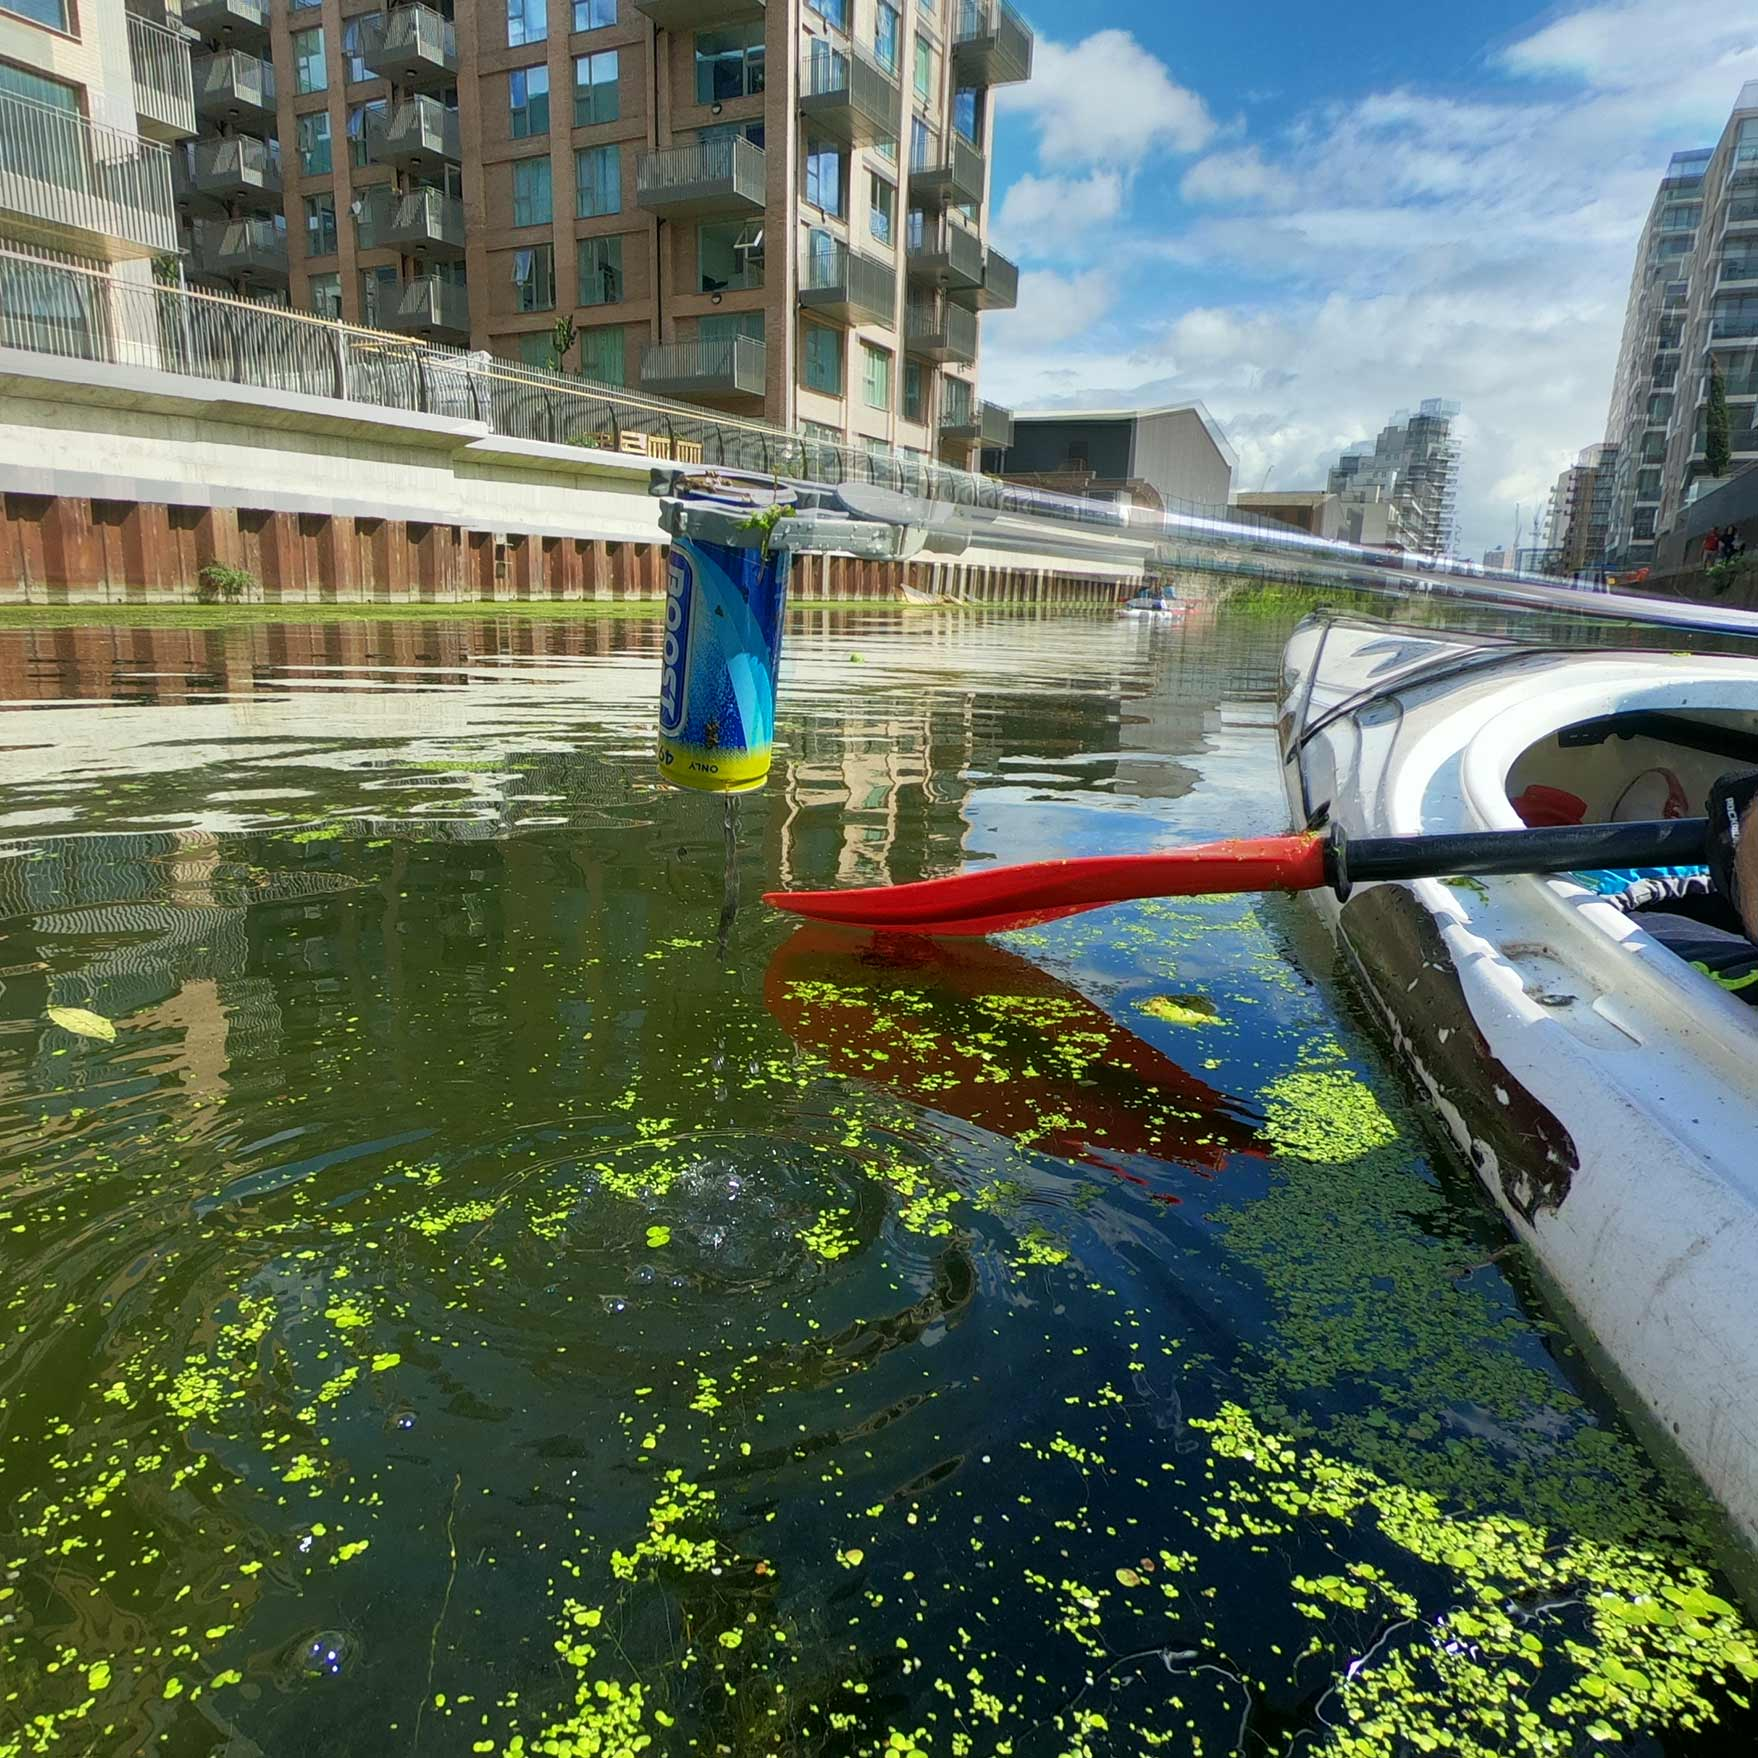 Plastic in River Thames Limehouse London